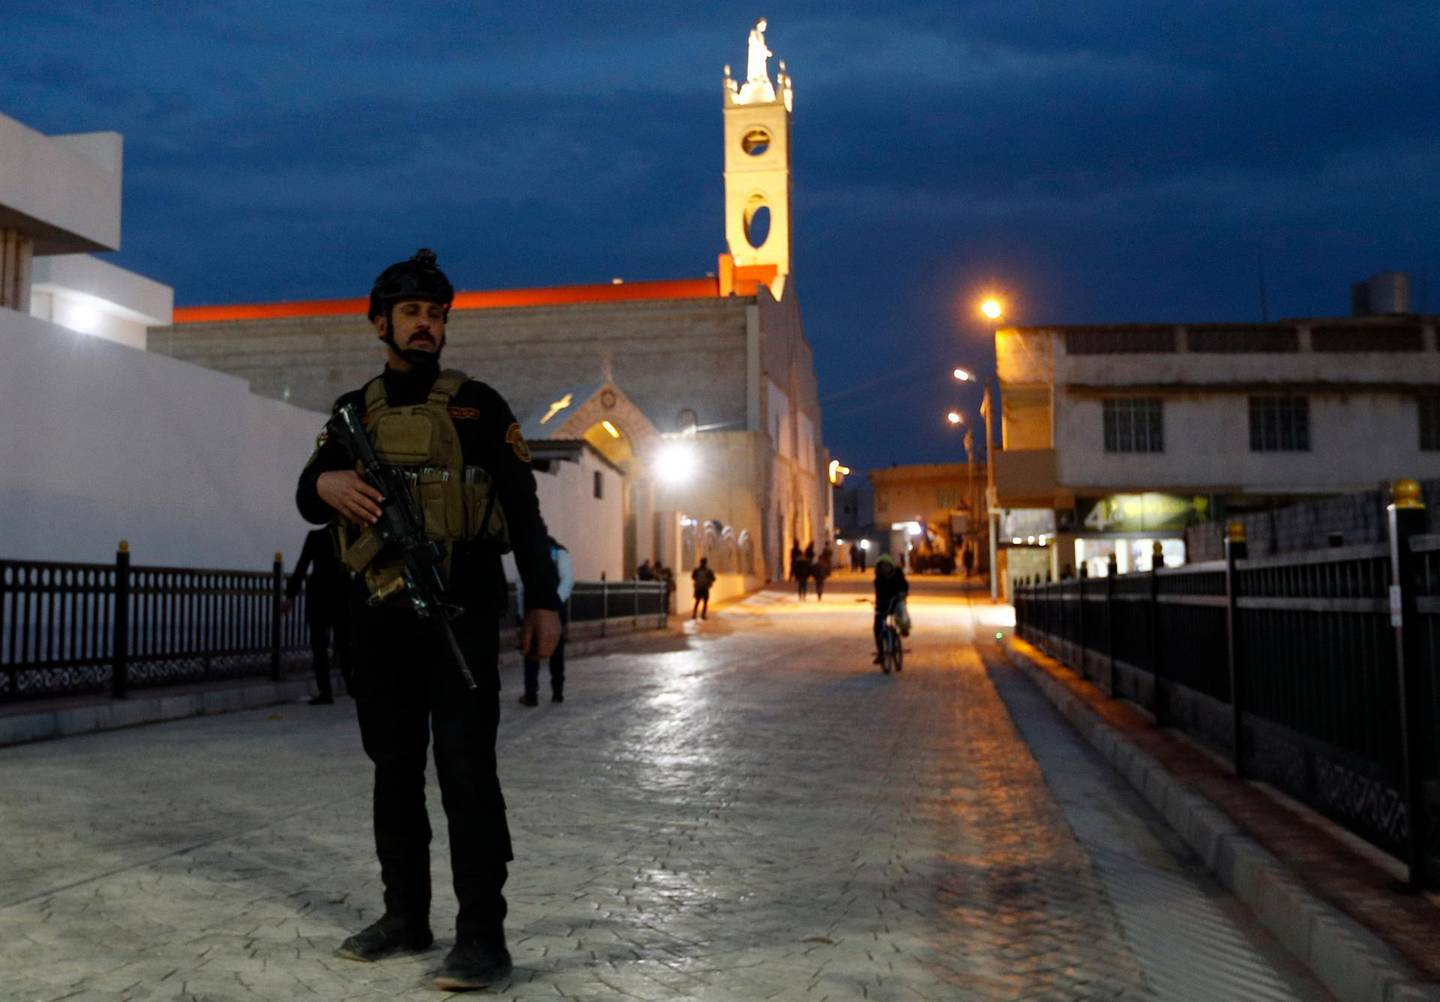 """An Iraqi army soldier stands patrol outside the Immaculate Conception Church during preparations for Pope Francis' upcoming trip to Iraq in Qaraqos, Iraq, Thursday, March. 4, 2021. The pope will visit the church of the """"Immaculate Conception"""" in Qaraqosh in northern Iraq, during his historic trip to the country this week. Damaged and charred during the IS reign of terror, the church's tragedy mirrored that of its Christian community which was devastated by the group. (AP Photo/Hadi Mizban)"""